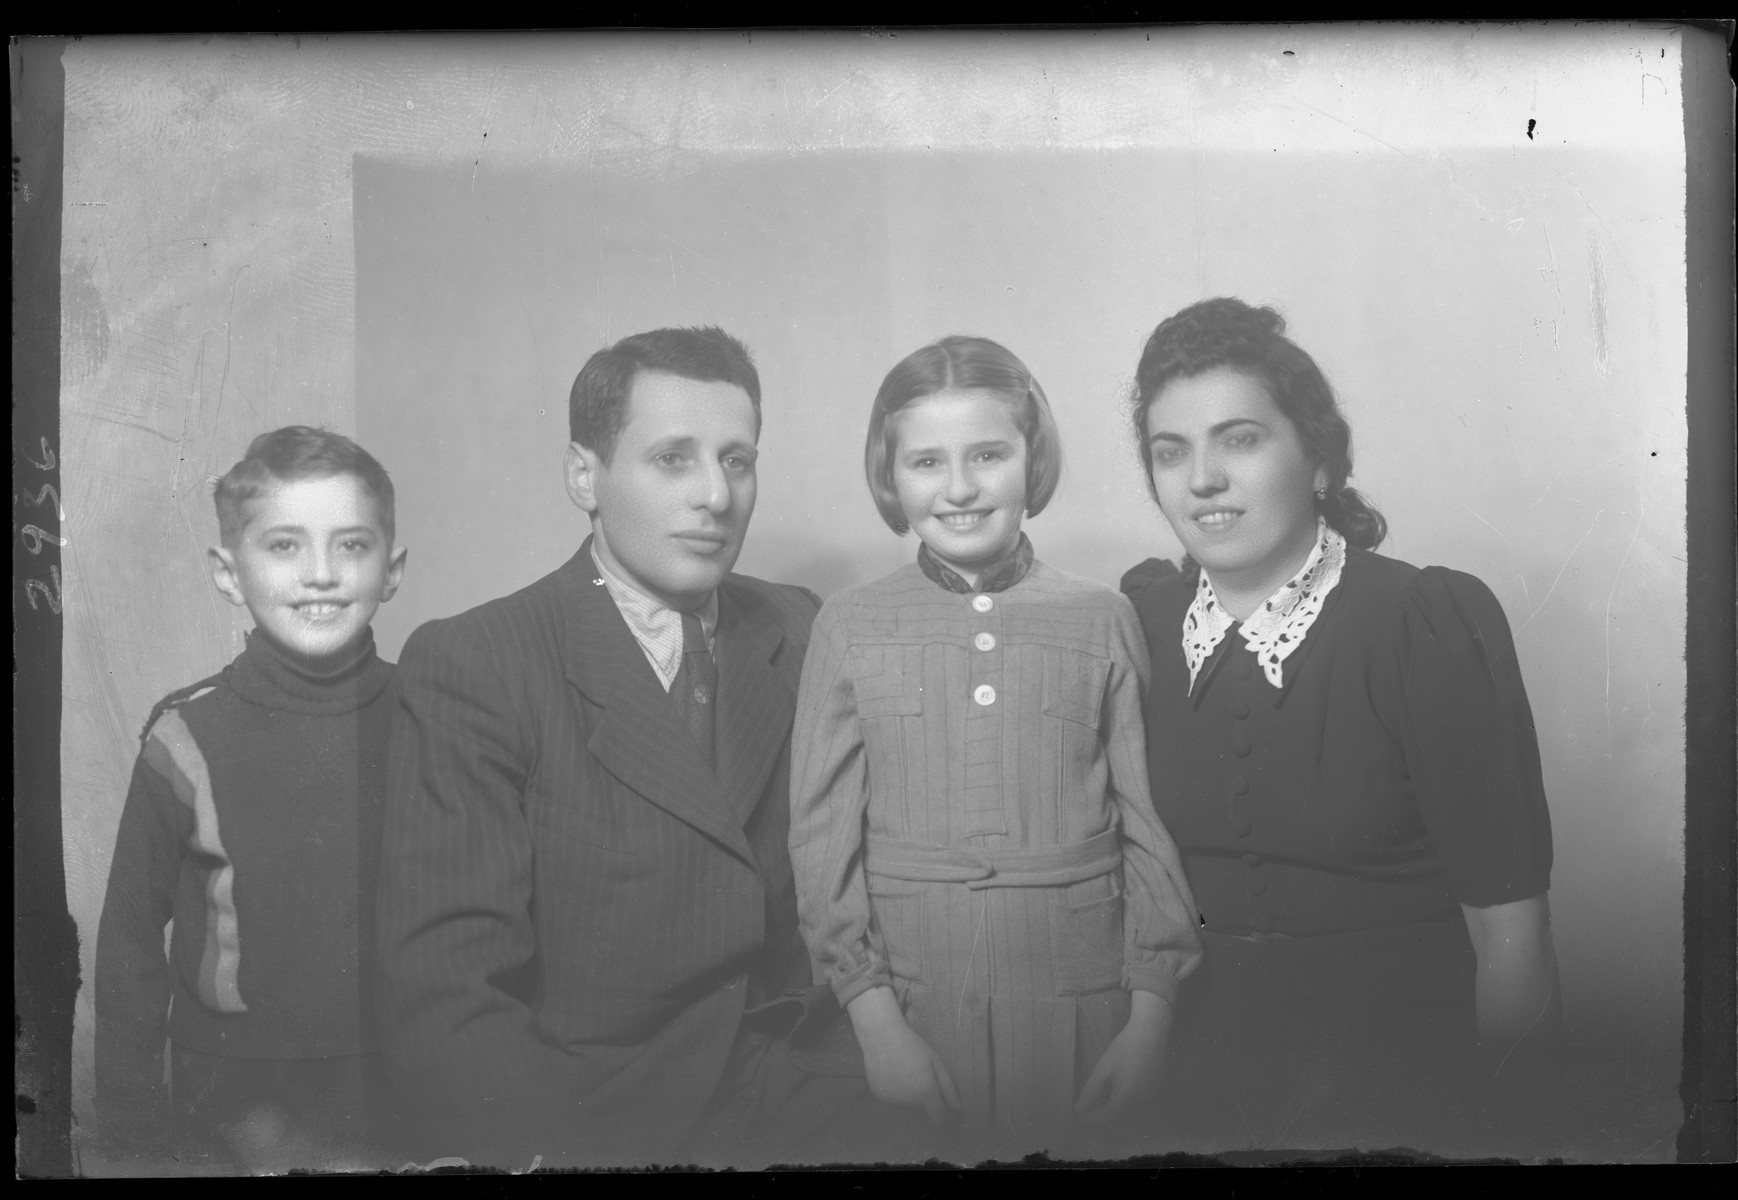 Studio portrait of the family of Gyorey Schartz.